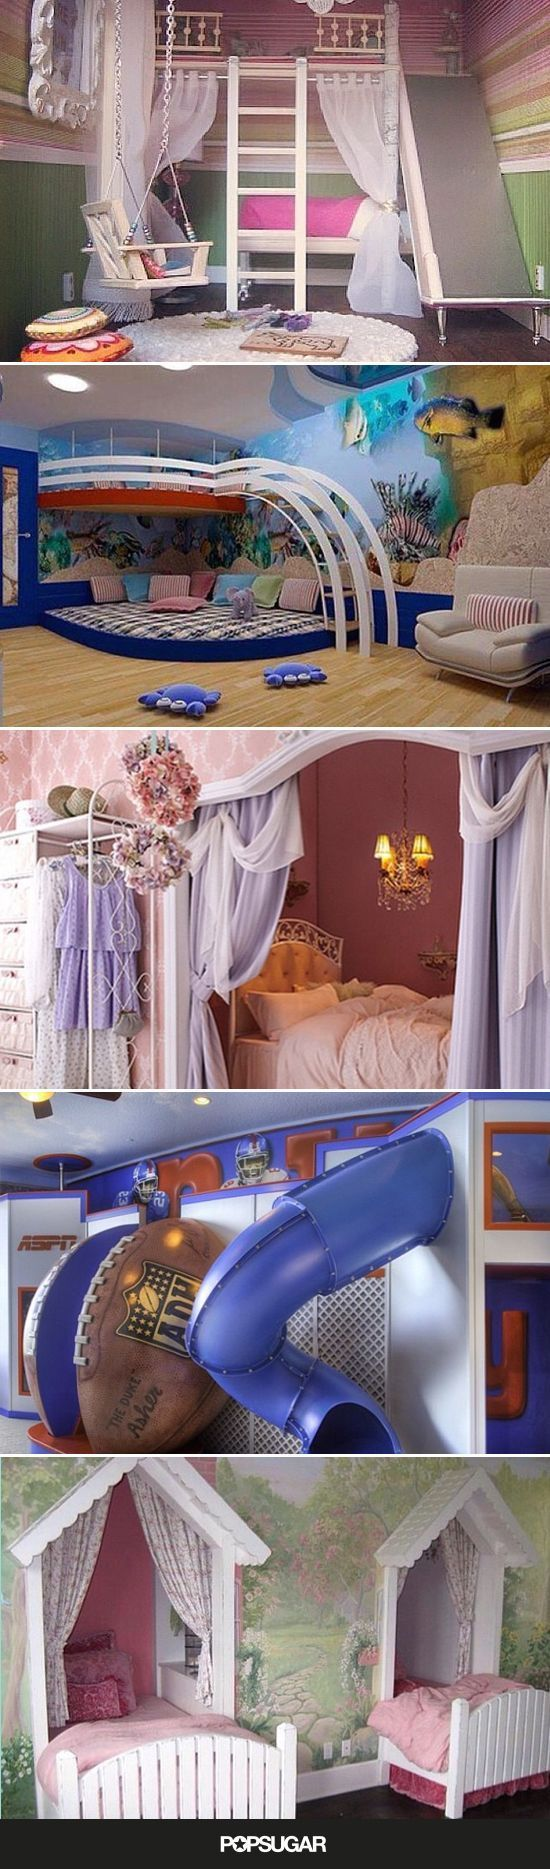 These 26 Crazy Kids Rooms Will Make You Want to Redecorate Immediately  Childs bedroom